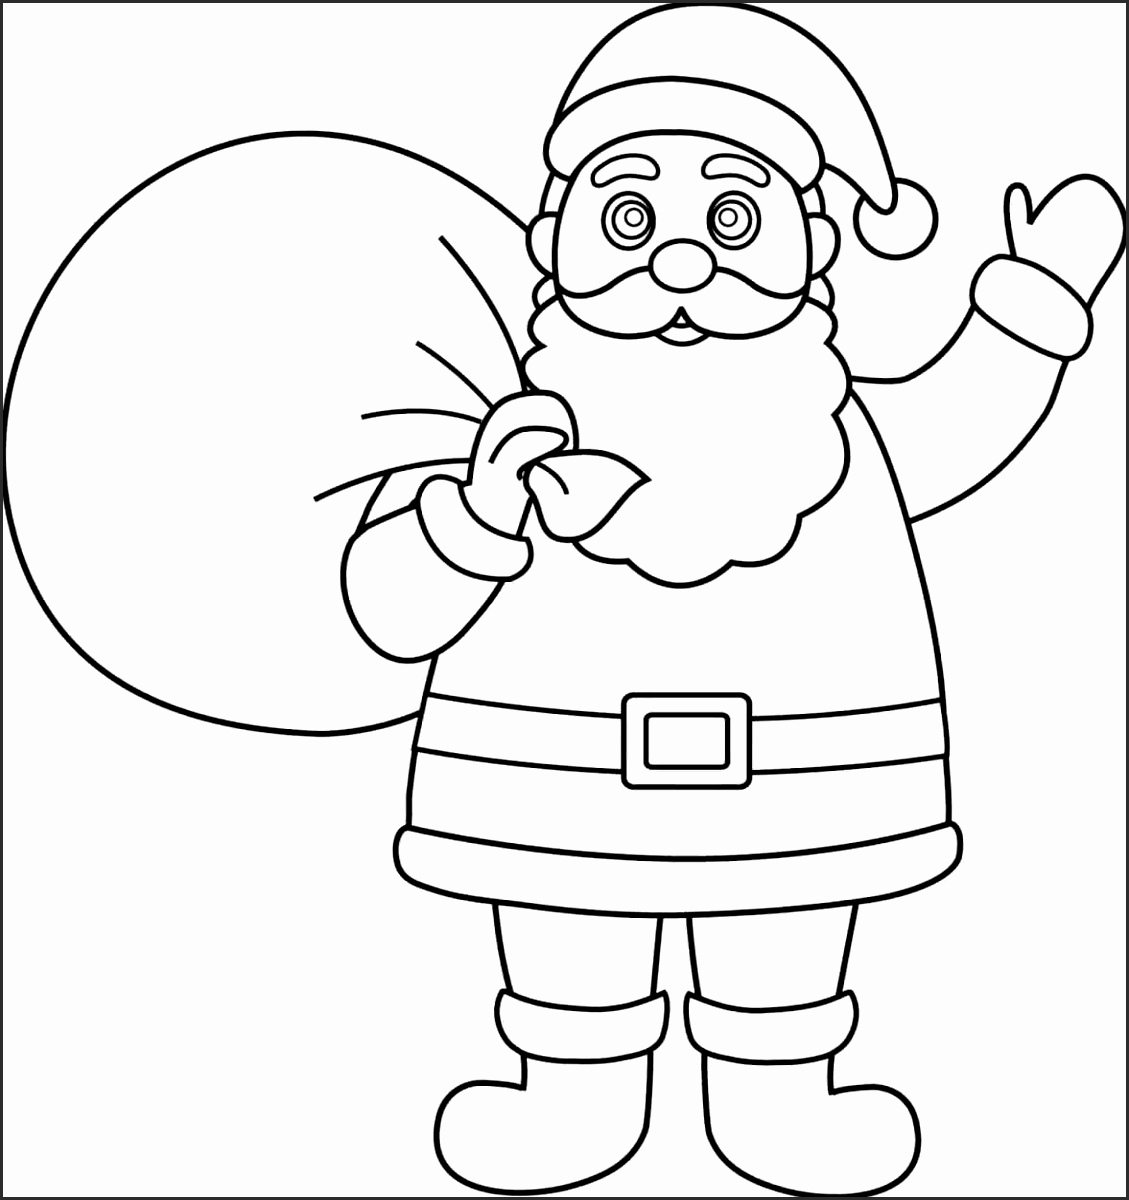 1129x1200 Cool Christmas Drawings Qrh5v Inspirational Merry Christmas How